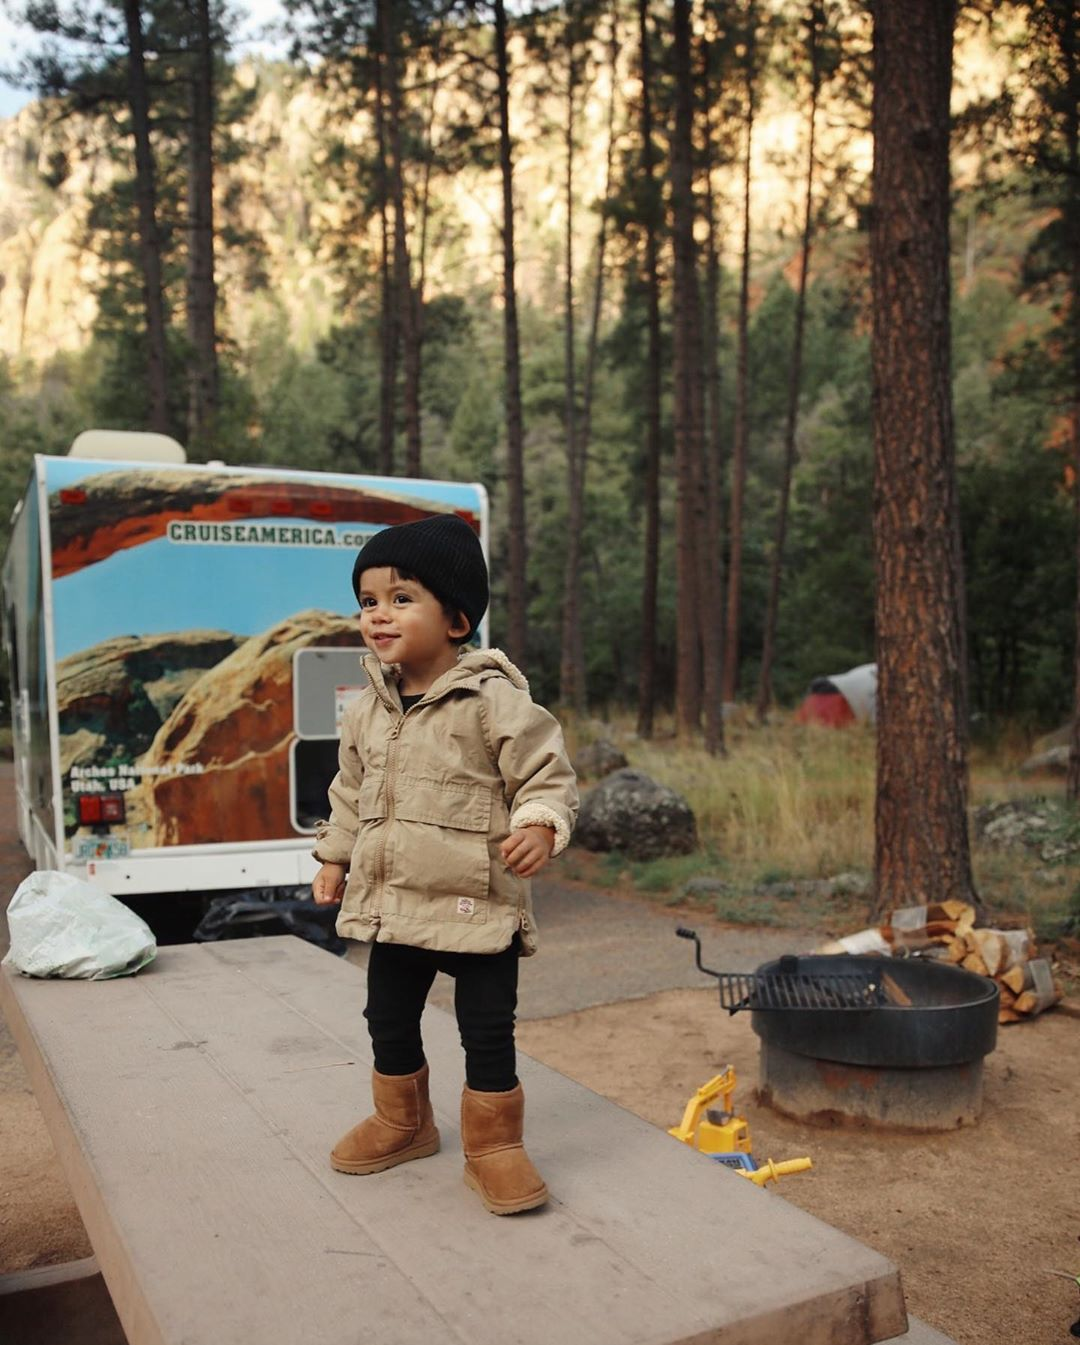 Cruise-America-Bryce-Canyon-RV-Rental.jpg